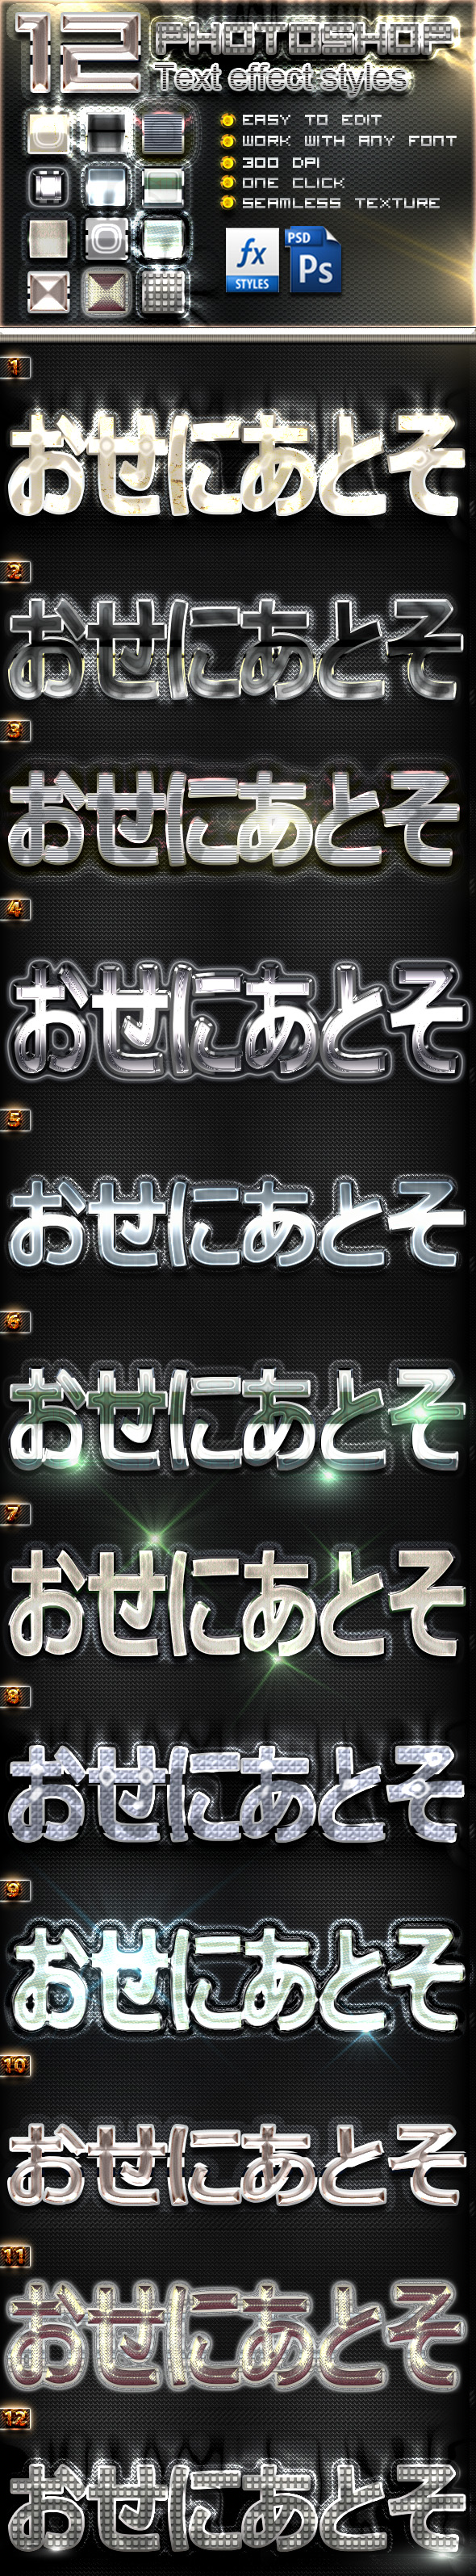 12 Photoshop Silver Text Effect Styles Vol 19 - Text Effects Styles